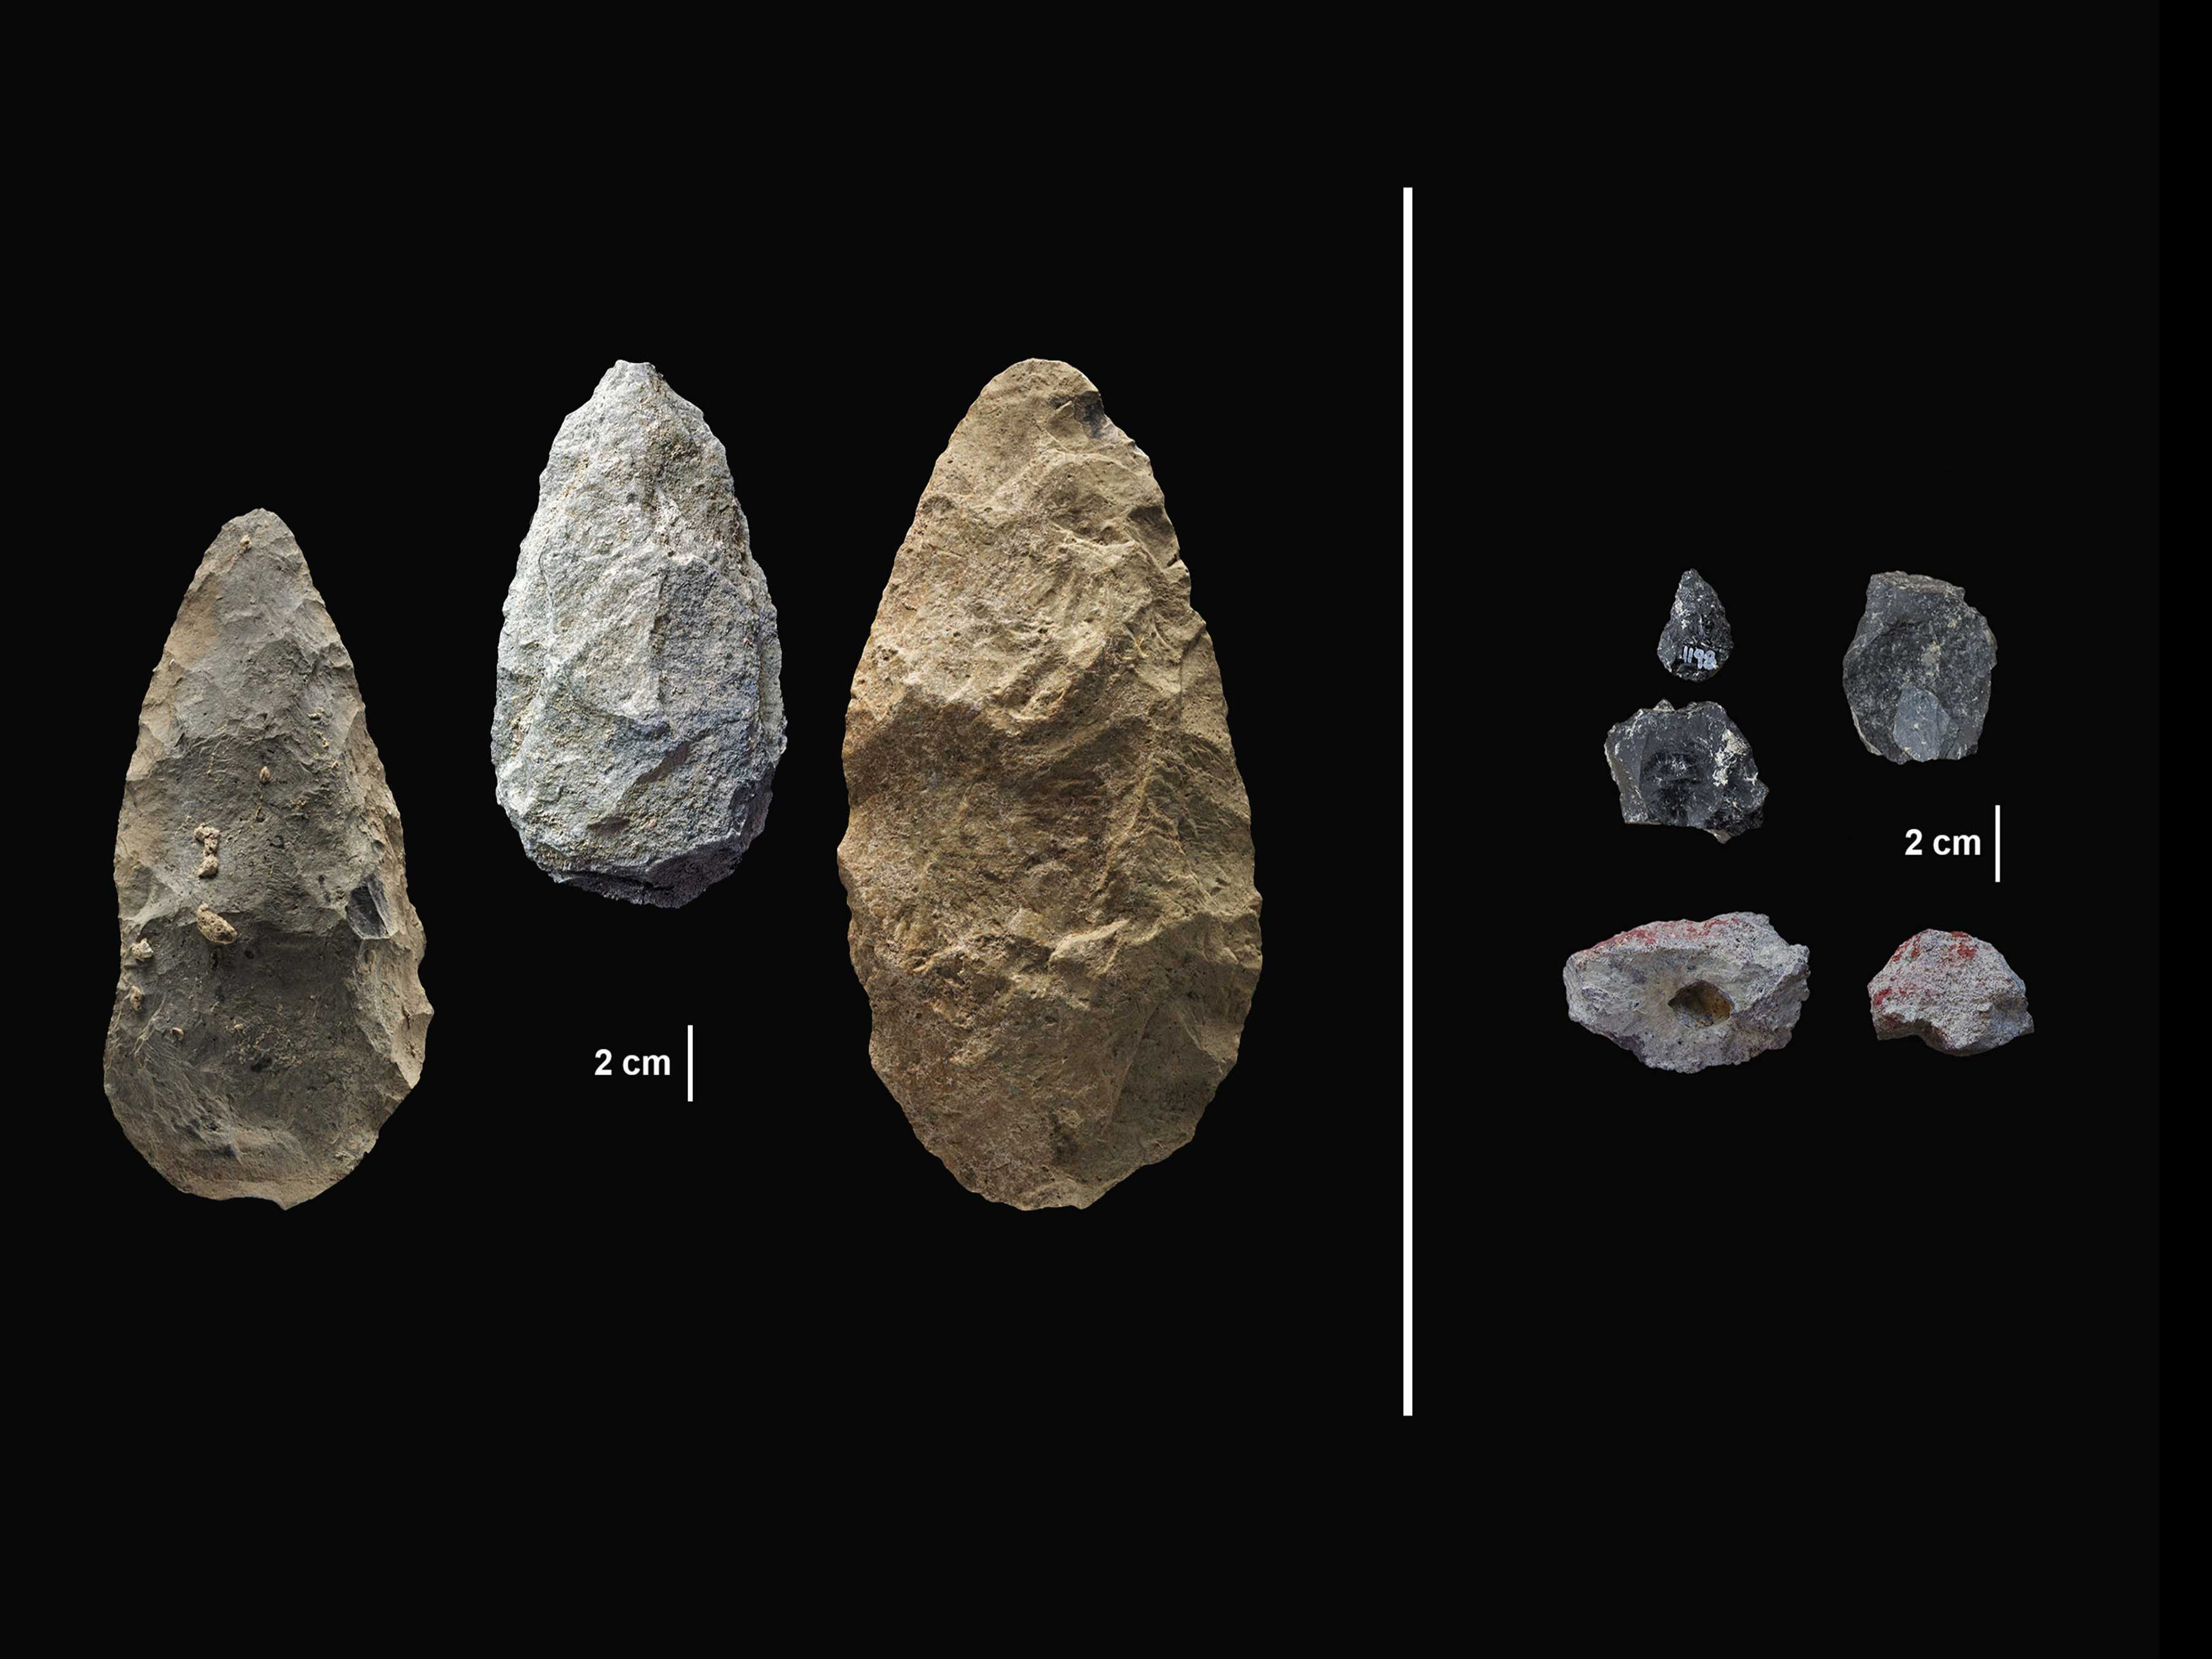 Stone Tools from Kenya Give Early Glimpse of Human Behavior